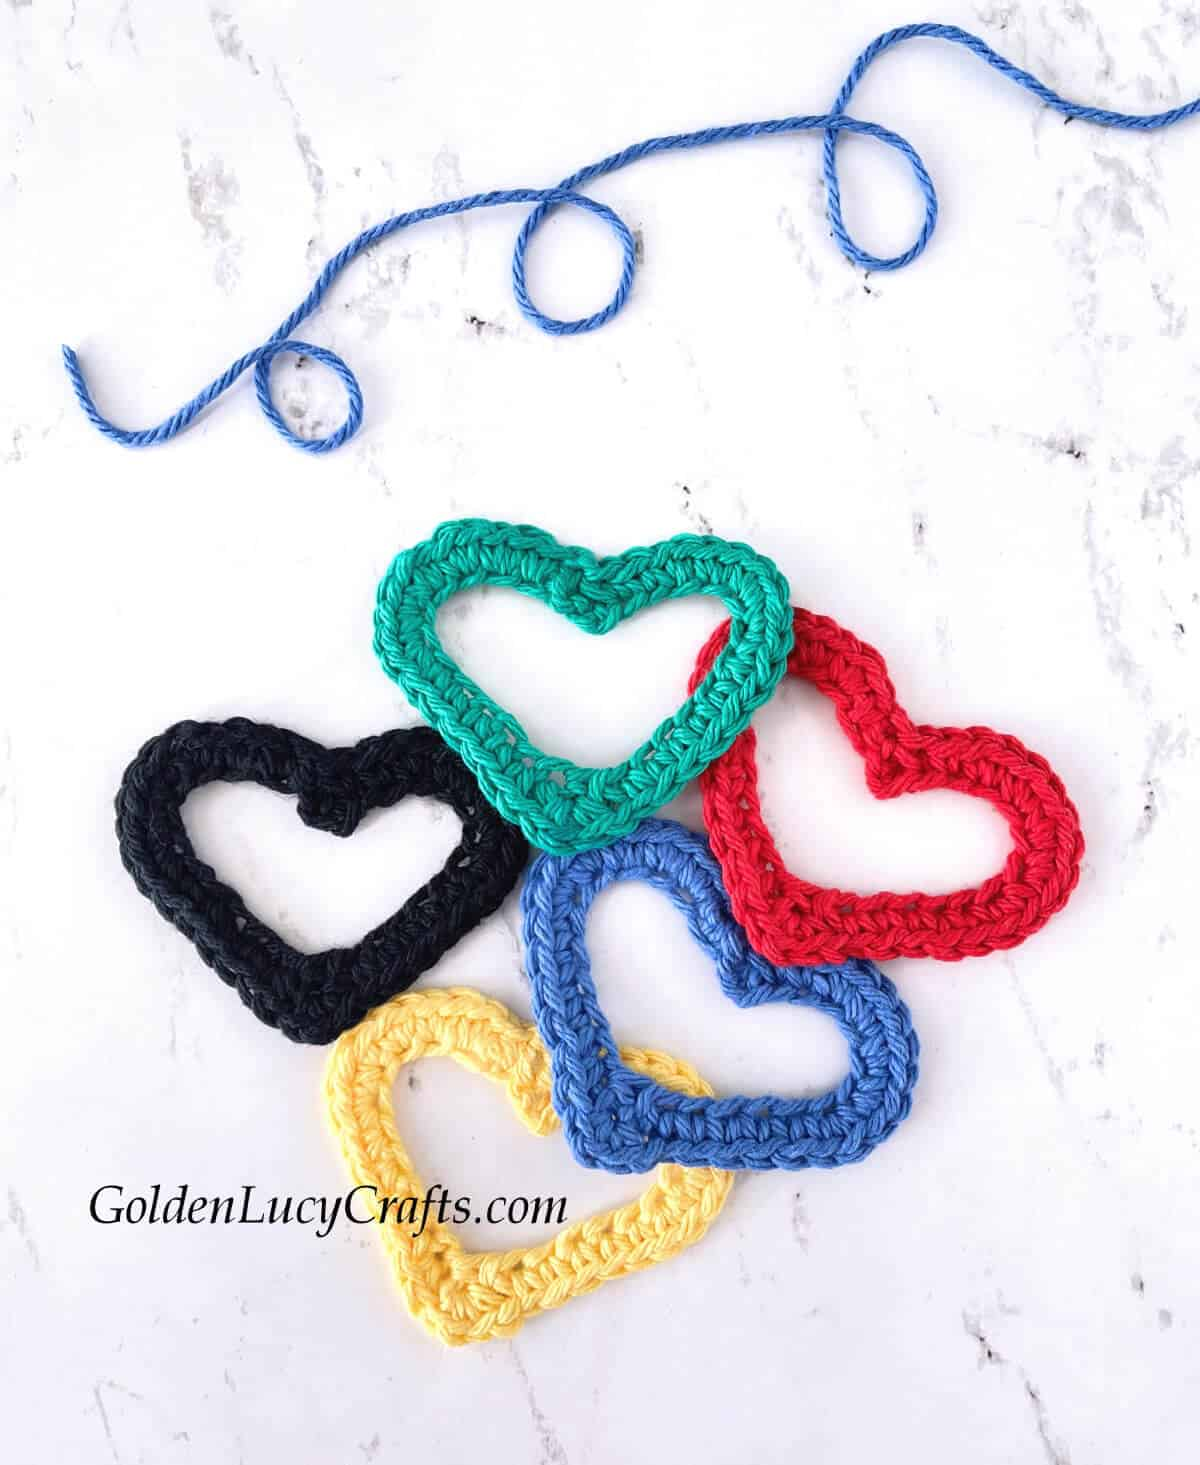 Crocheted hearts in red, blue, yellow, black and green colors.